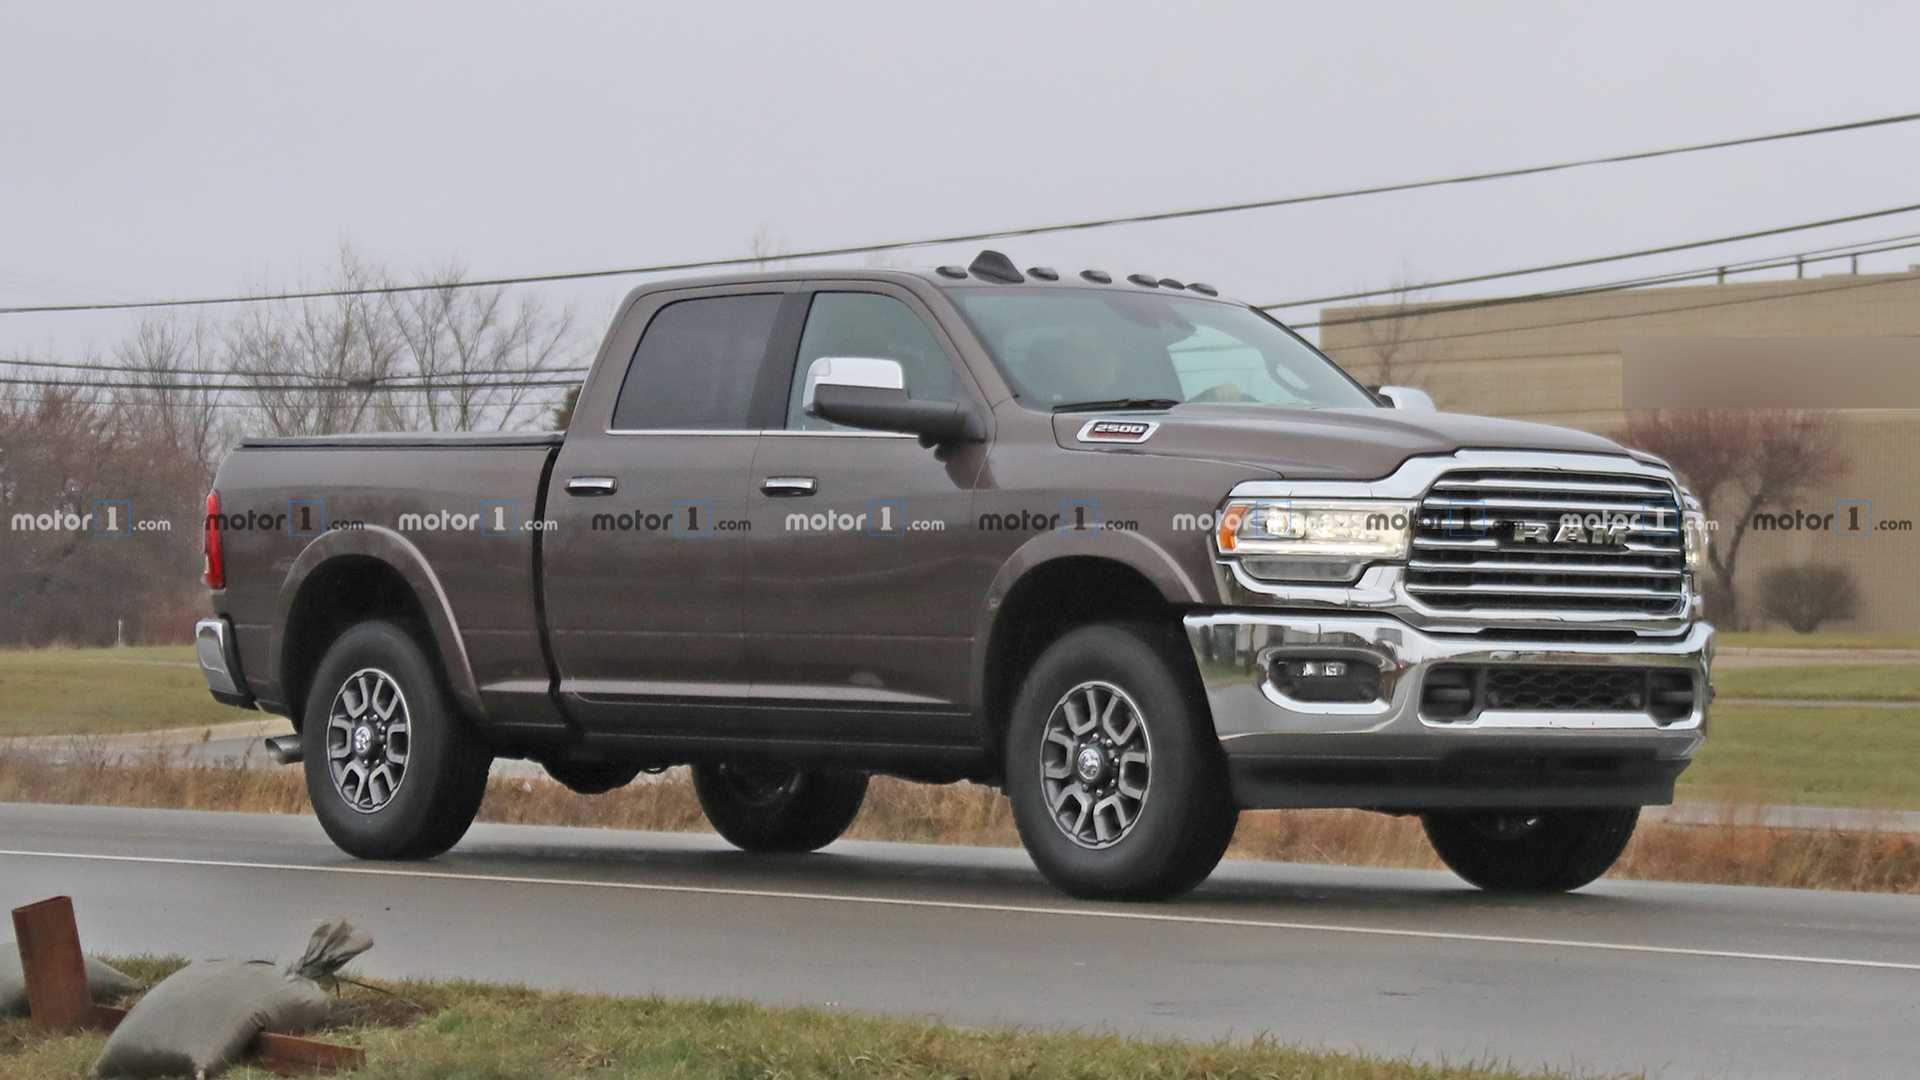 62 The Best 2020 Dodge Ram 2500 Cummins Release Date